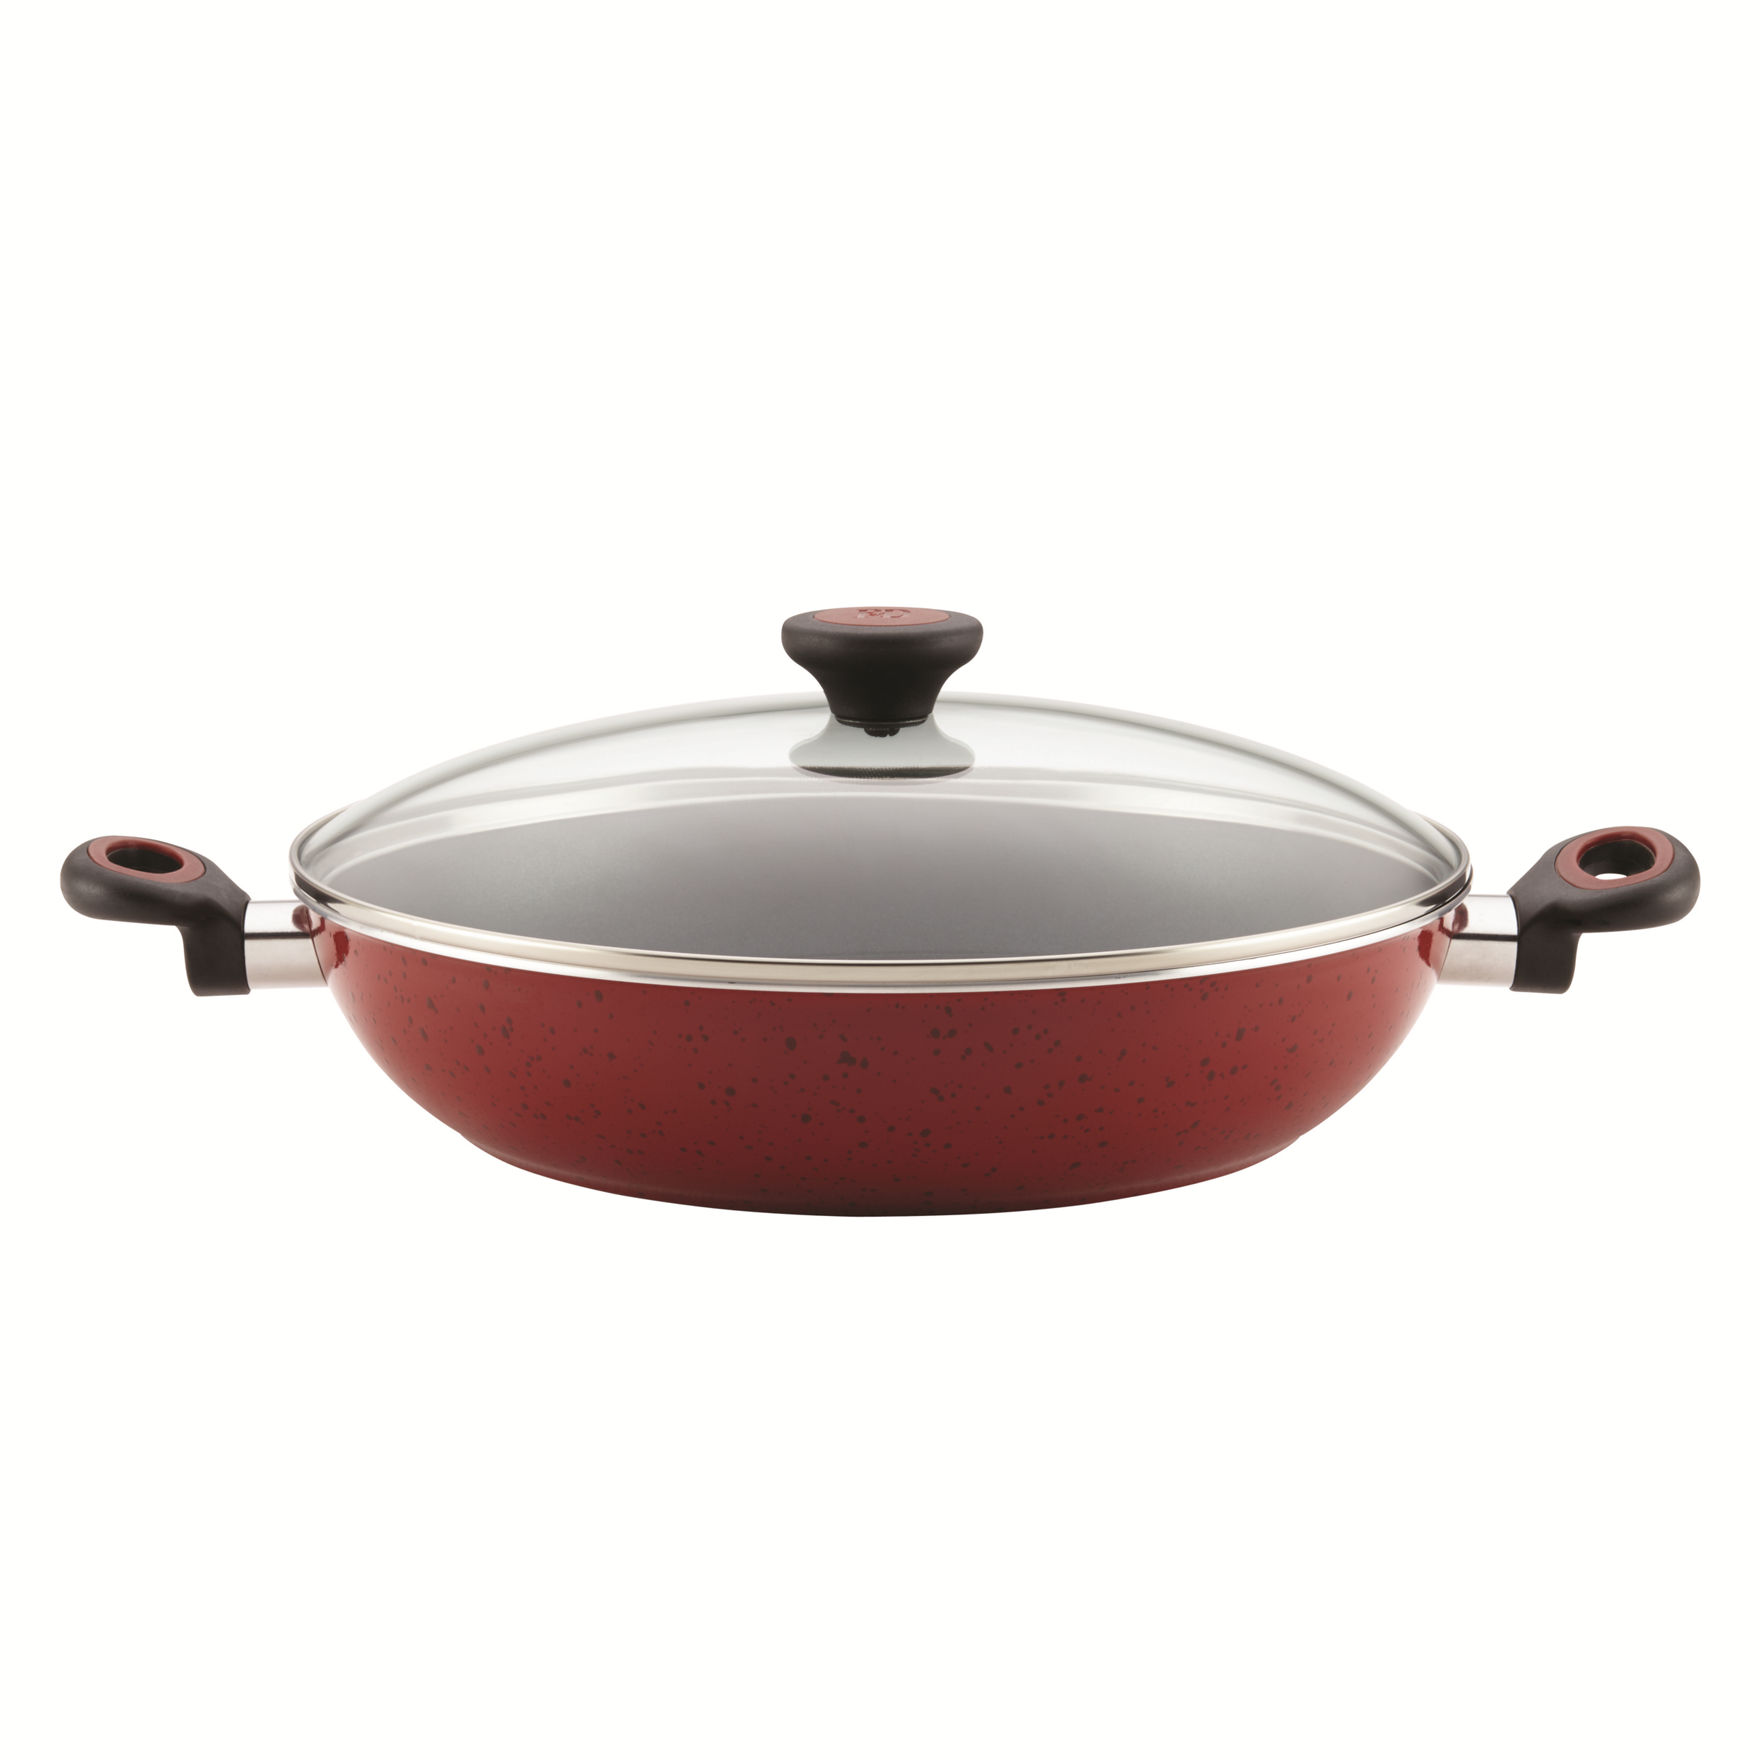 Paula Deen Red Frying Pans & Skillets Cookware